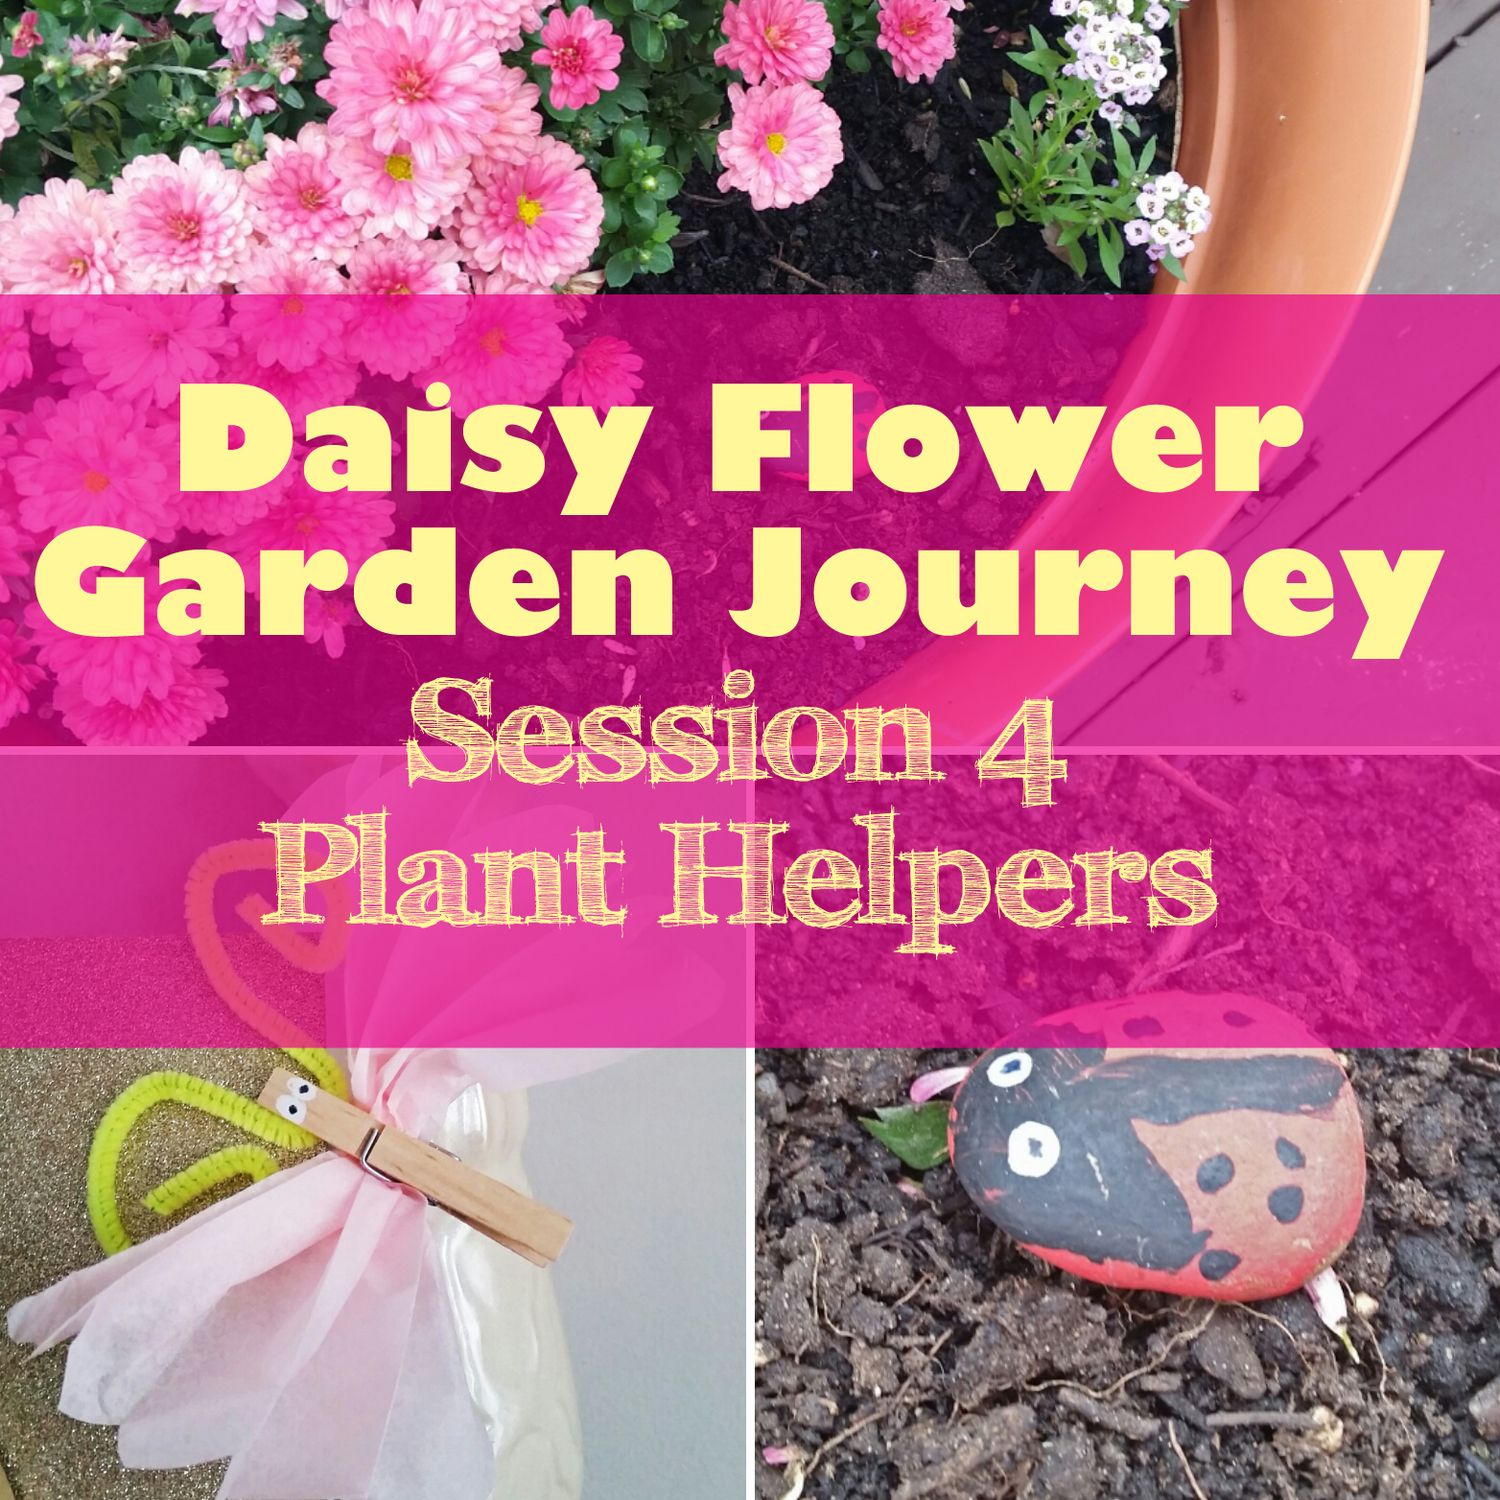 Daisy Flower Garden Journey Session 4 Plant Helpers 3 Wittle